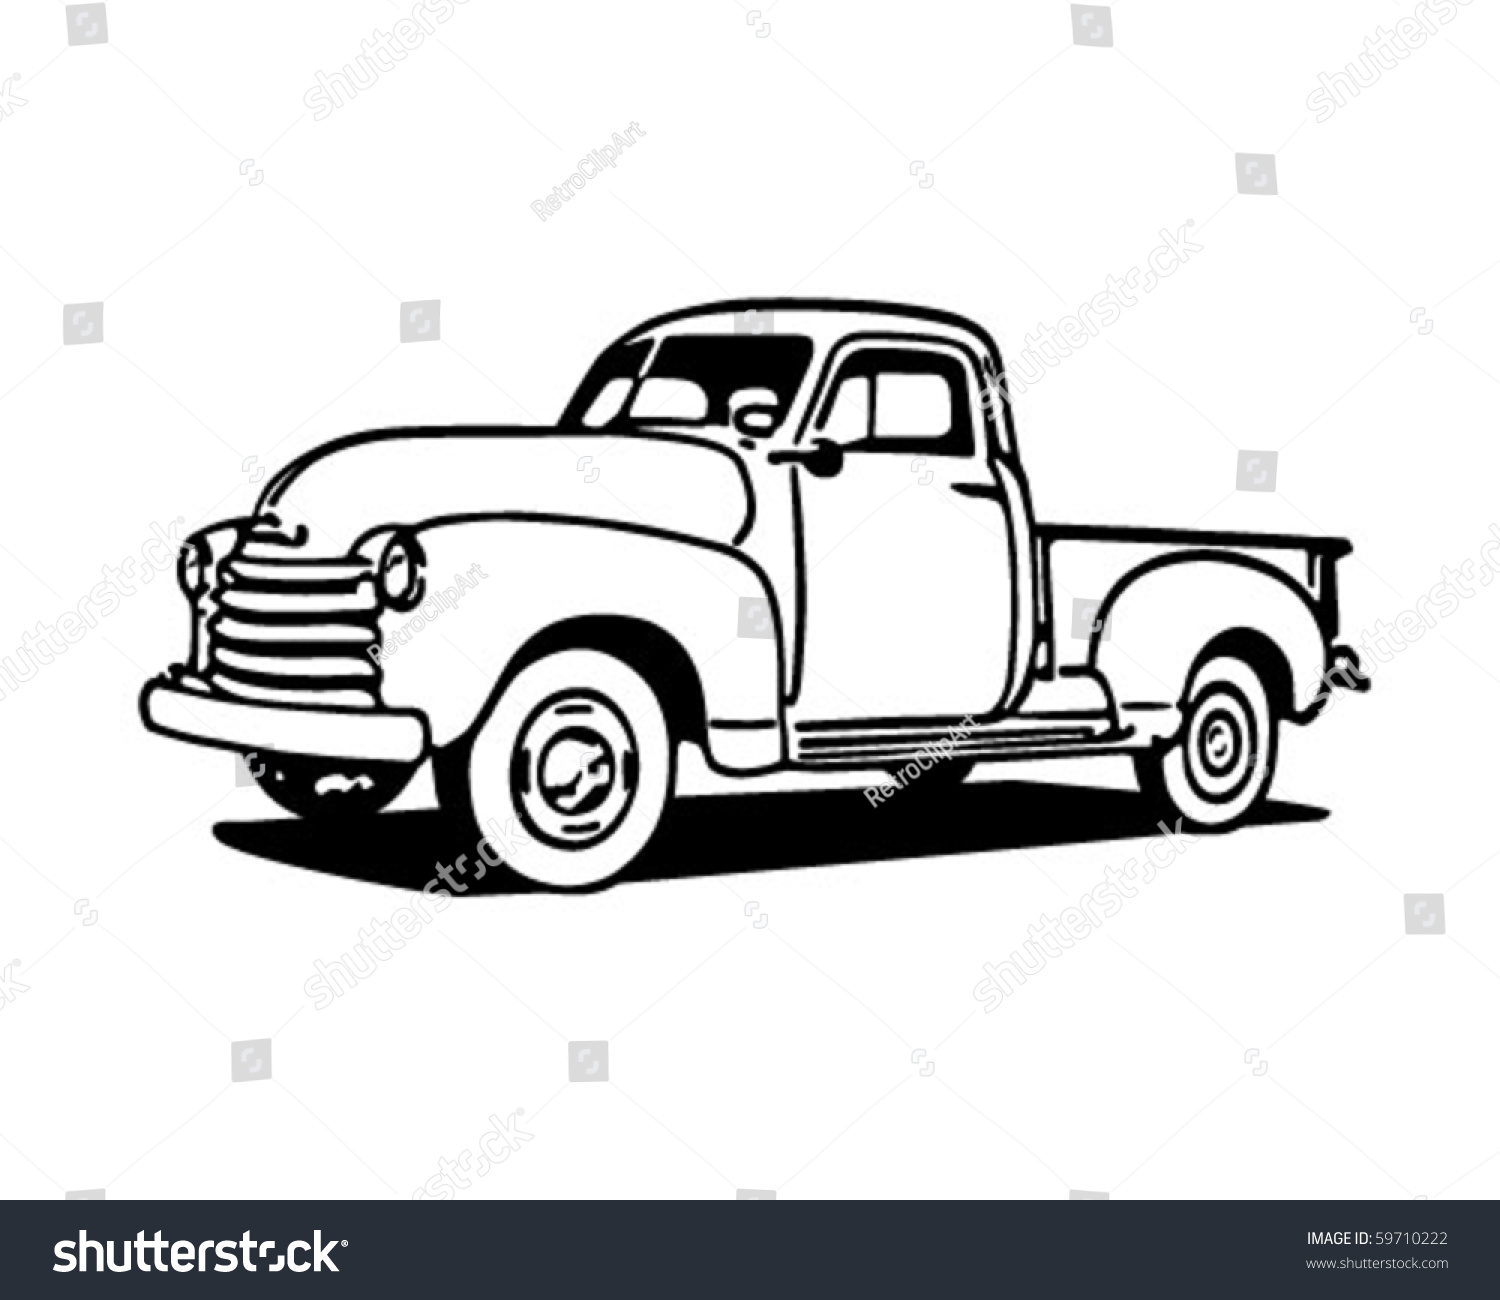 Old truck black and white clipart vector royalty free download Pickup Truck Retro Clip Art Stock Vector Illustration - Free ... vector royalty free download